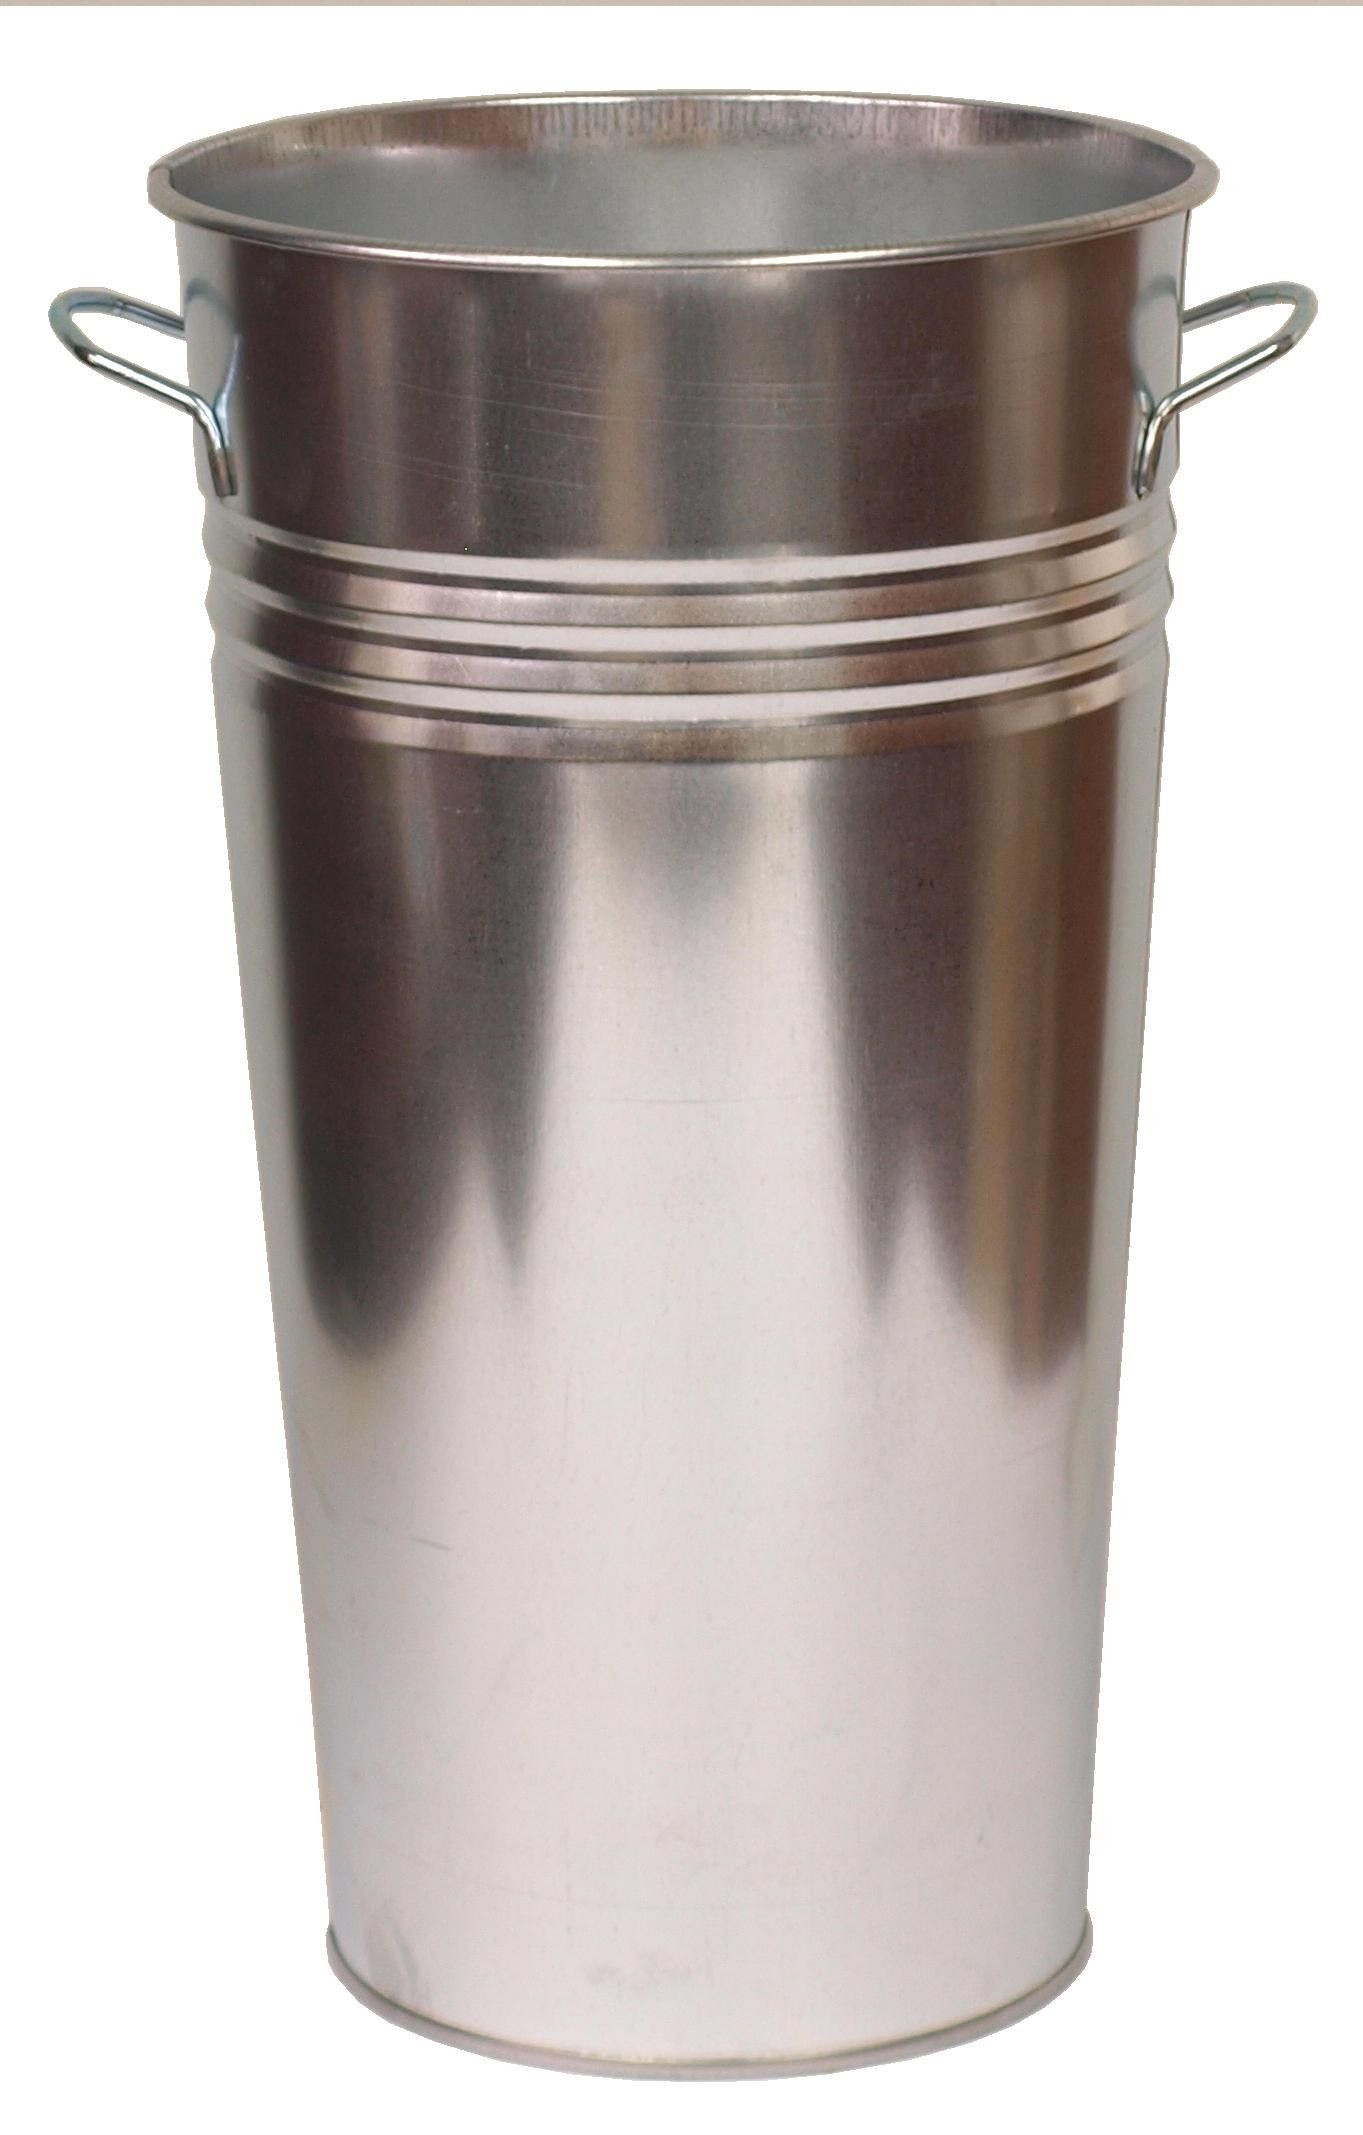 galvanized sheet metal vase of houston international trading galvanized vase rustproof galvanized within houston international trading galvanized vase rustproof galvanized steel great for fresh cut flowers and